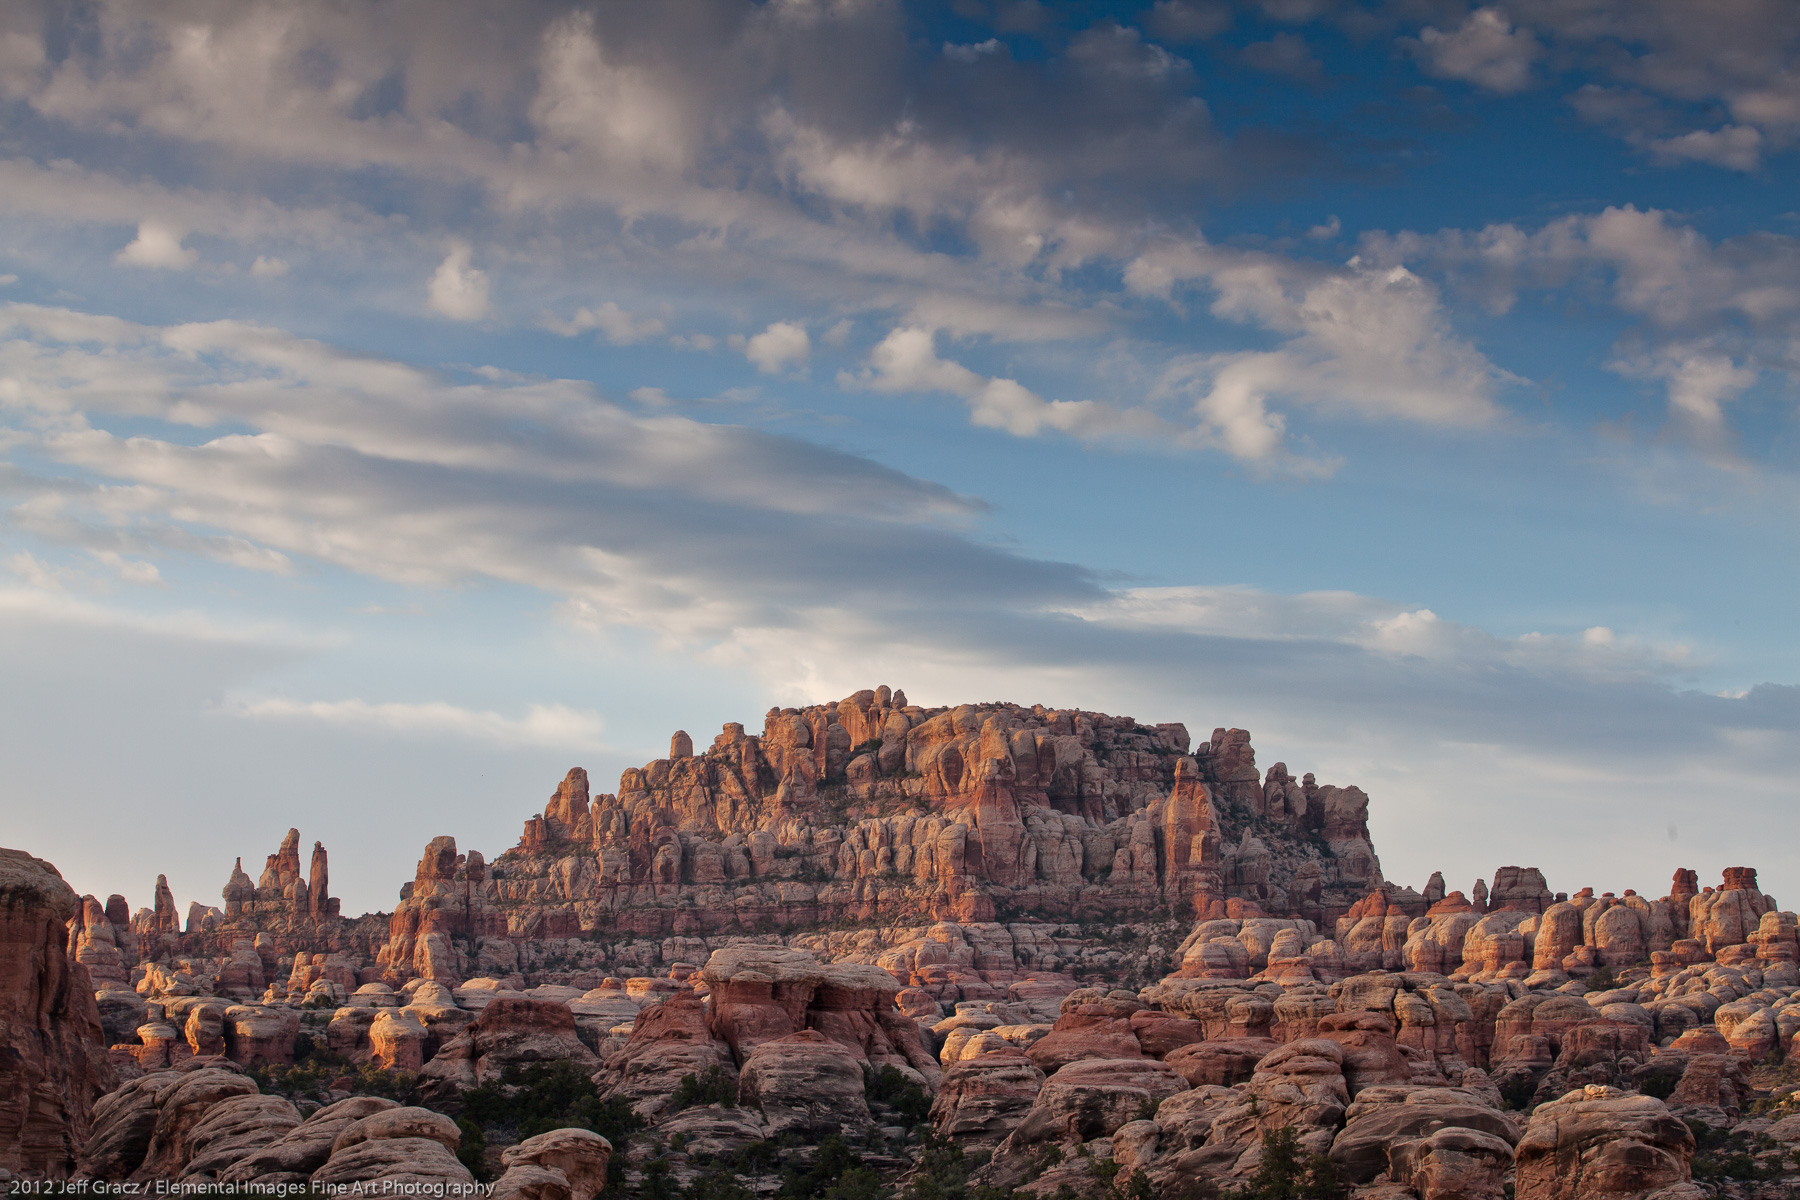 Needles and Buttes | Canyonlands National Park | UT | USA - © 2012 Jeff Gracz / Elemental Images Fine Art Photography - All Rights Reserved Worldwide